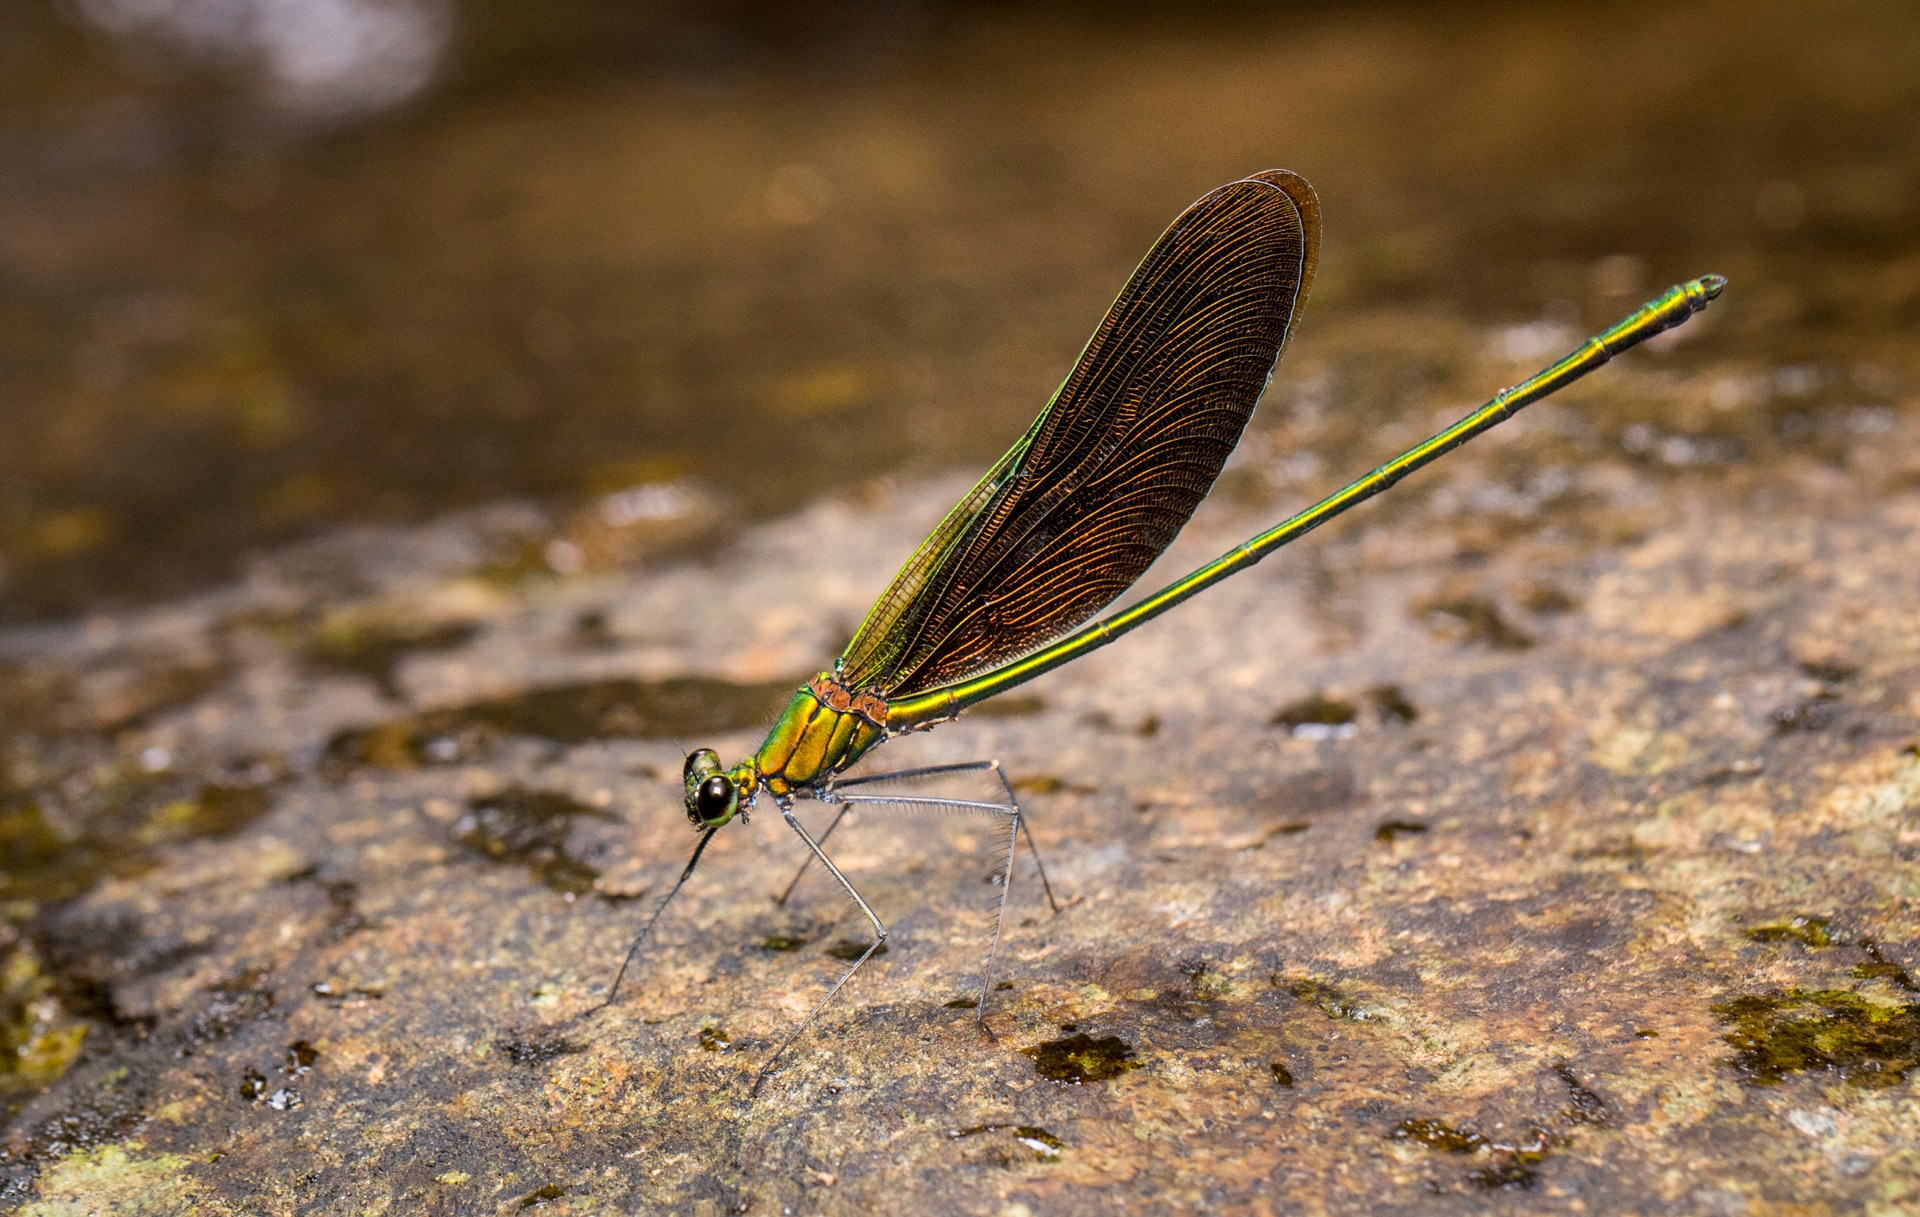 There are over 6,000 species of Odonata on the planet, and most of them depend on freshwater habitats. India has over 500 species, with the greatest diversity in the Western Ghats and Northeast India. This jewel of a damselfly is a male stream glory (Neurobasis chinensis). Photo: Saurabh Sawant  A male damselfly perches on a rock by a stream in the Western Ghats. Cover Photo: Saurabh Sawant